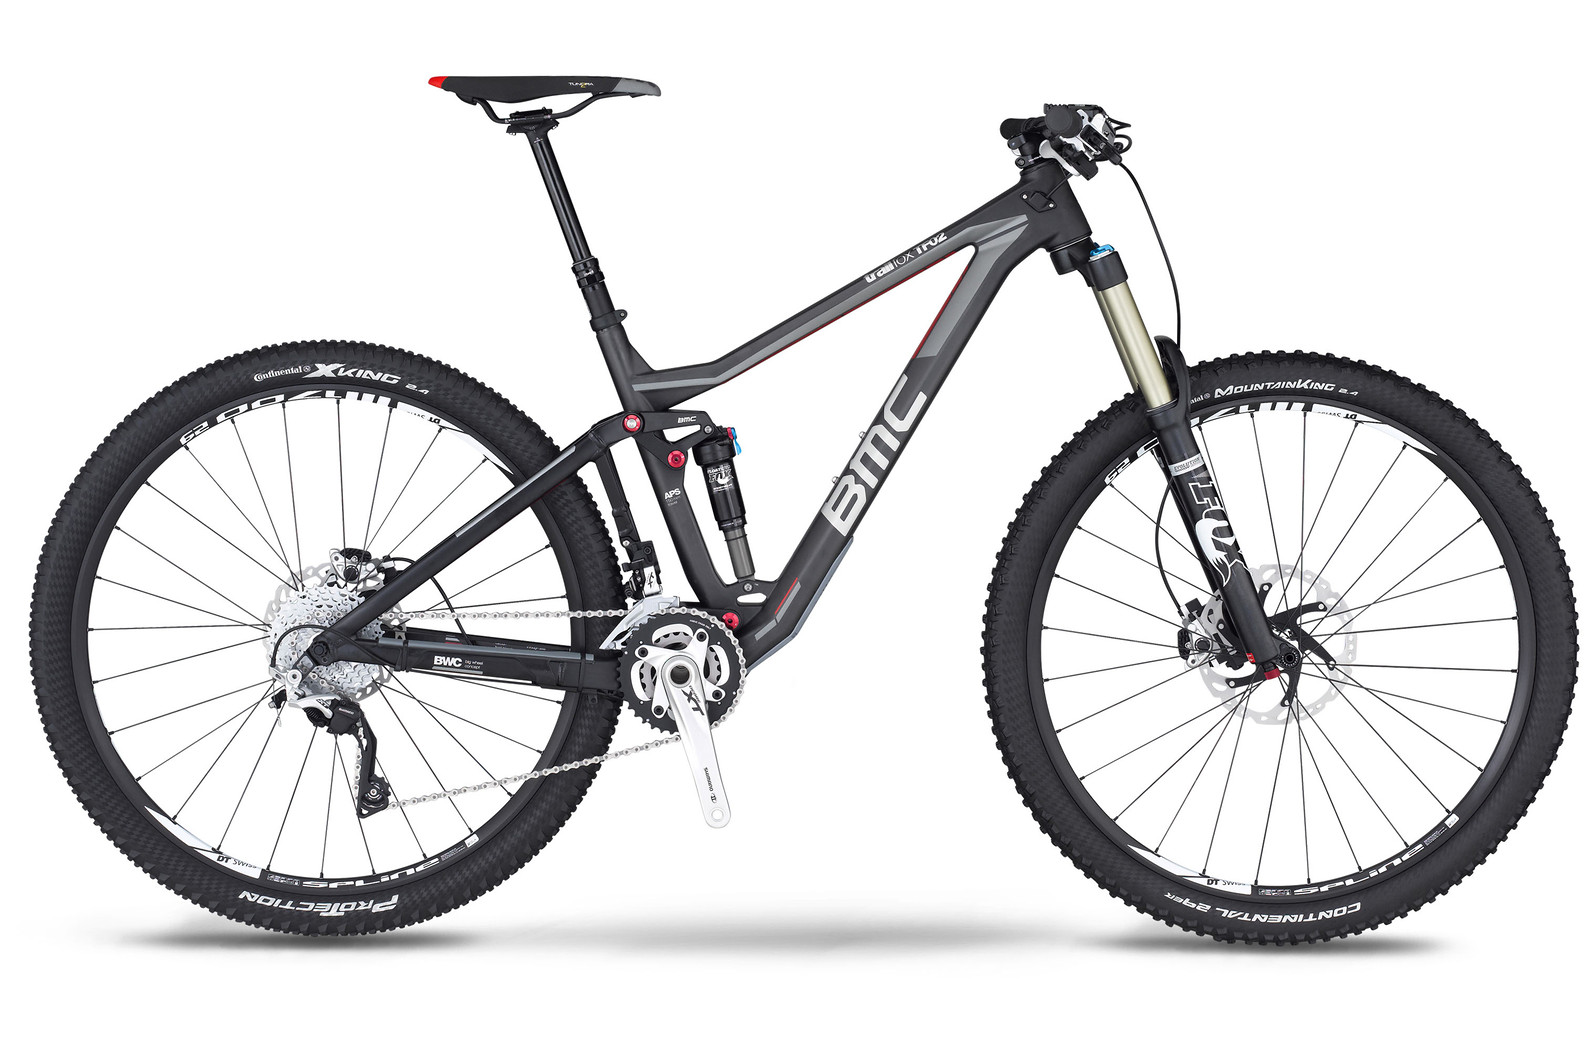 bike - 2014 BMC Trailfox TF02 with XT